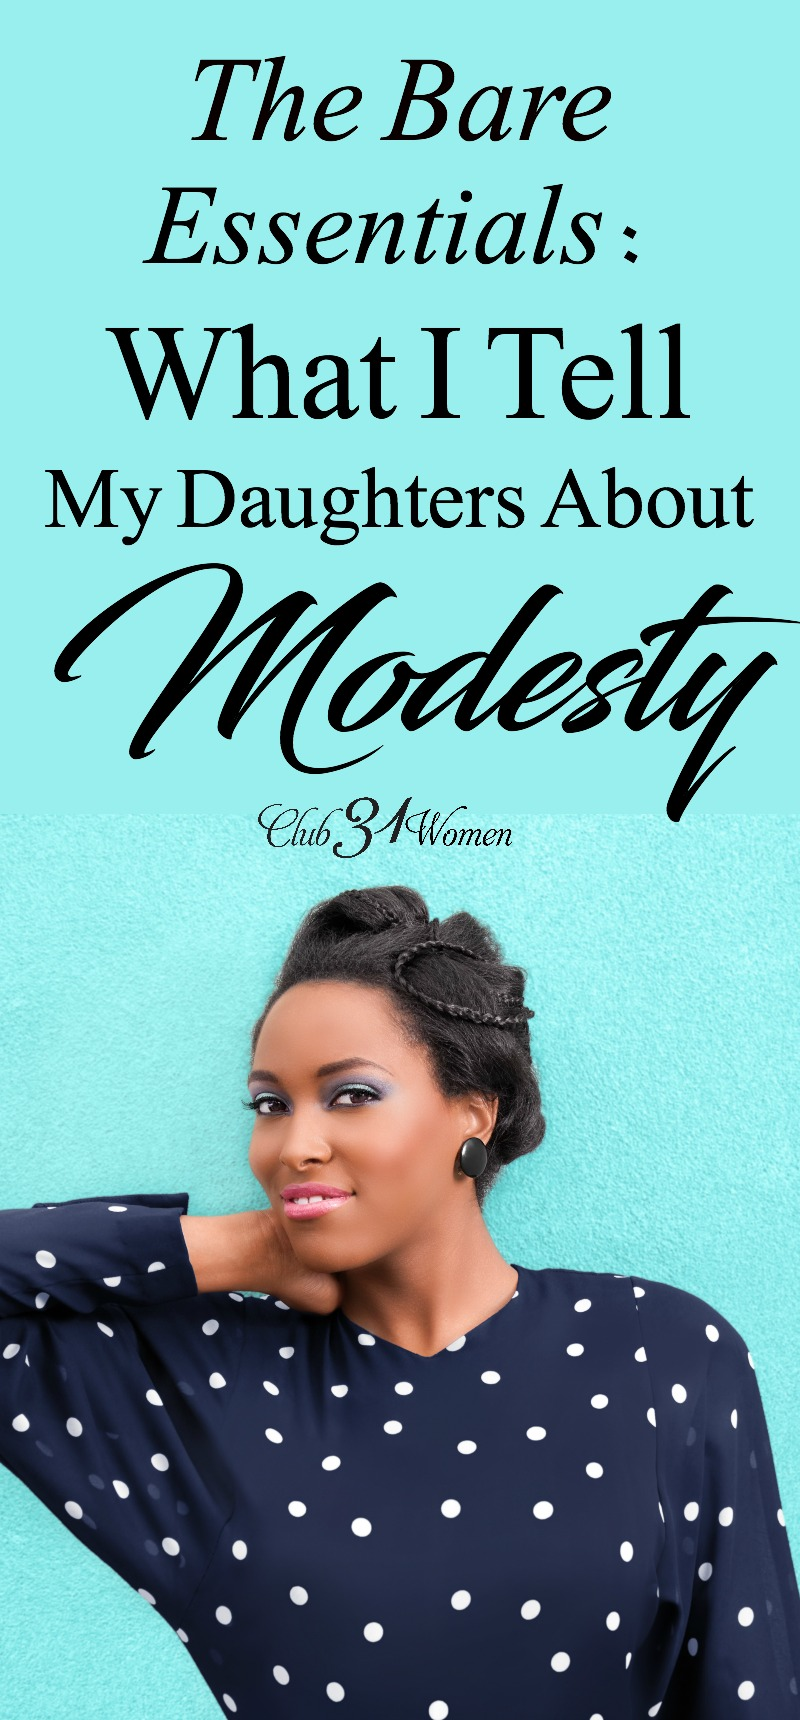 Ever wonder what modesty is all about? What it is and what it's not? Here's what I tell my daughters about a woman and modesty---the bare essentials. via @Club31Women